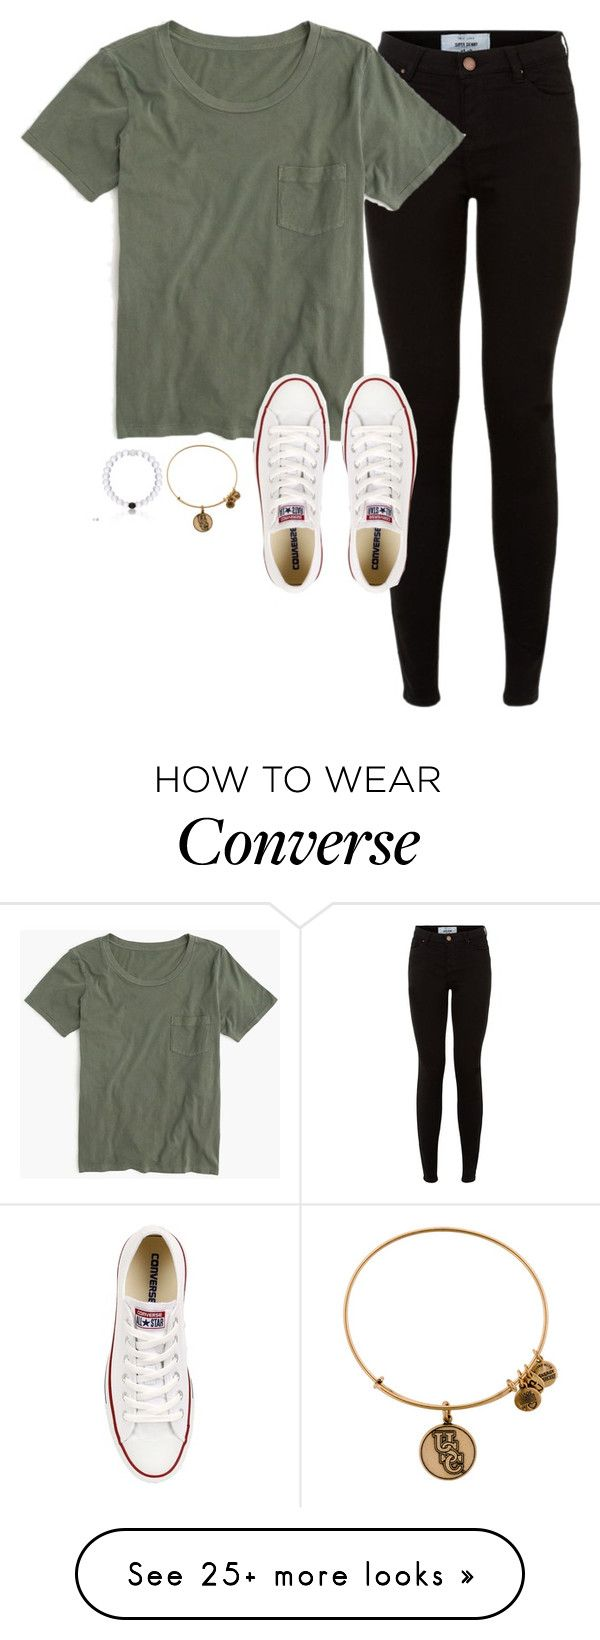 """Shawn Mendes Tomorrow"" by lizzielane33 on Polyvore featuring J.Crew, Converse and Alex and Ani"